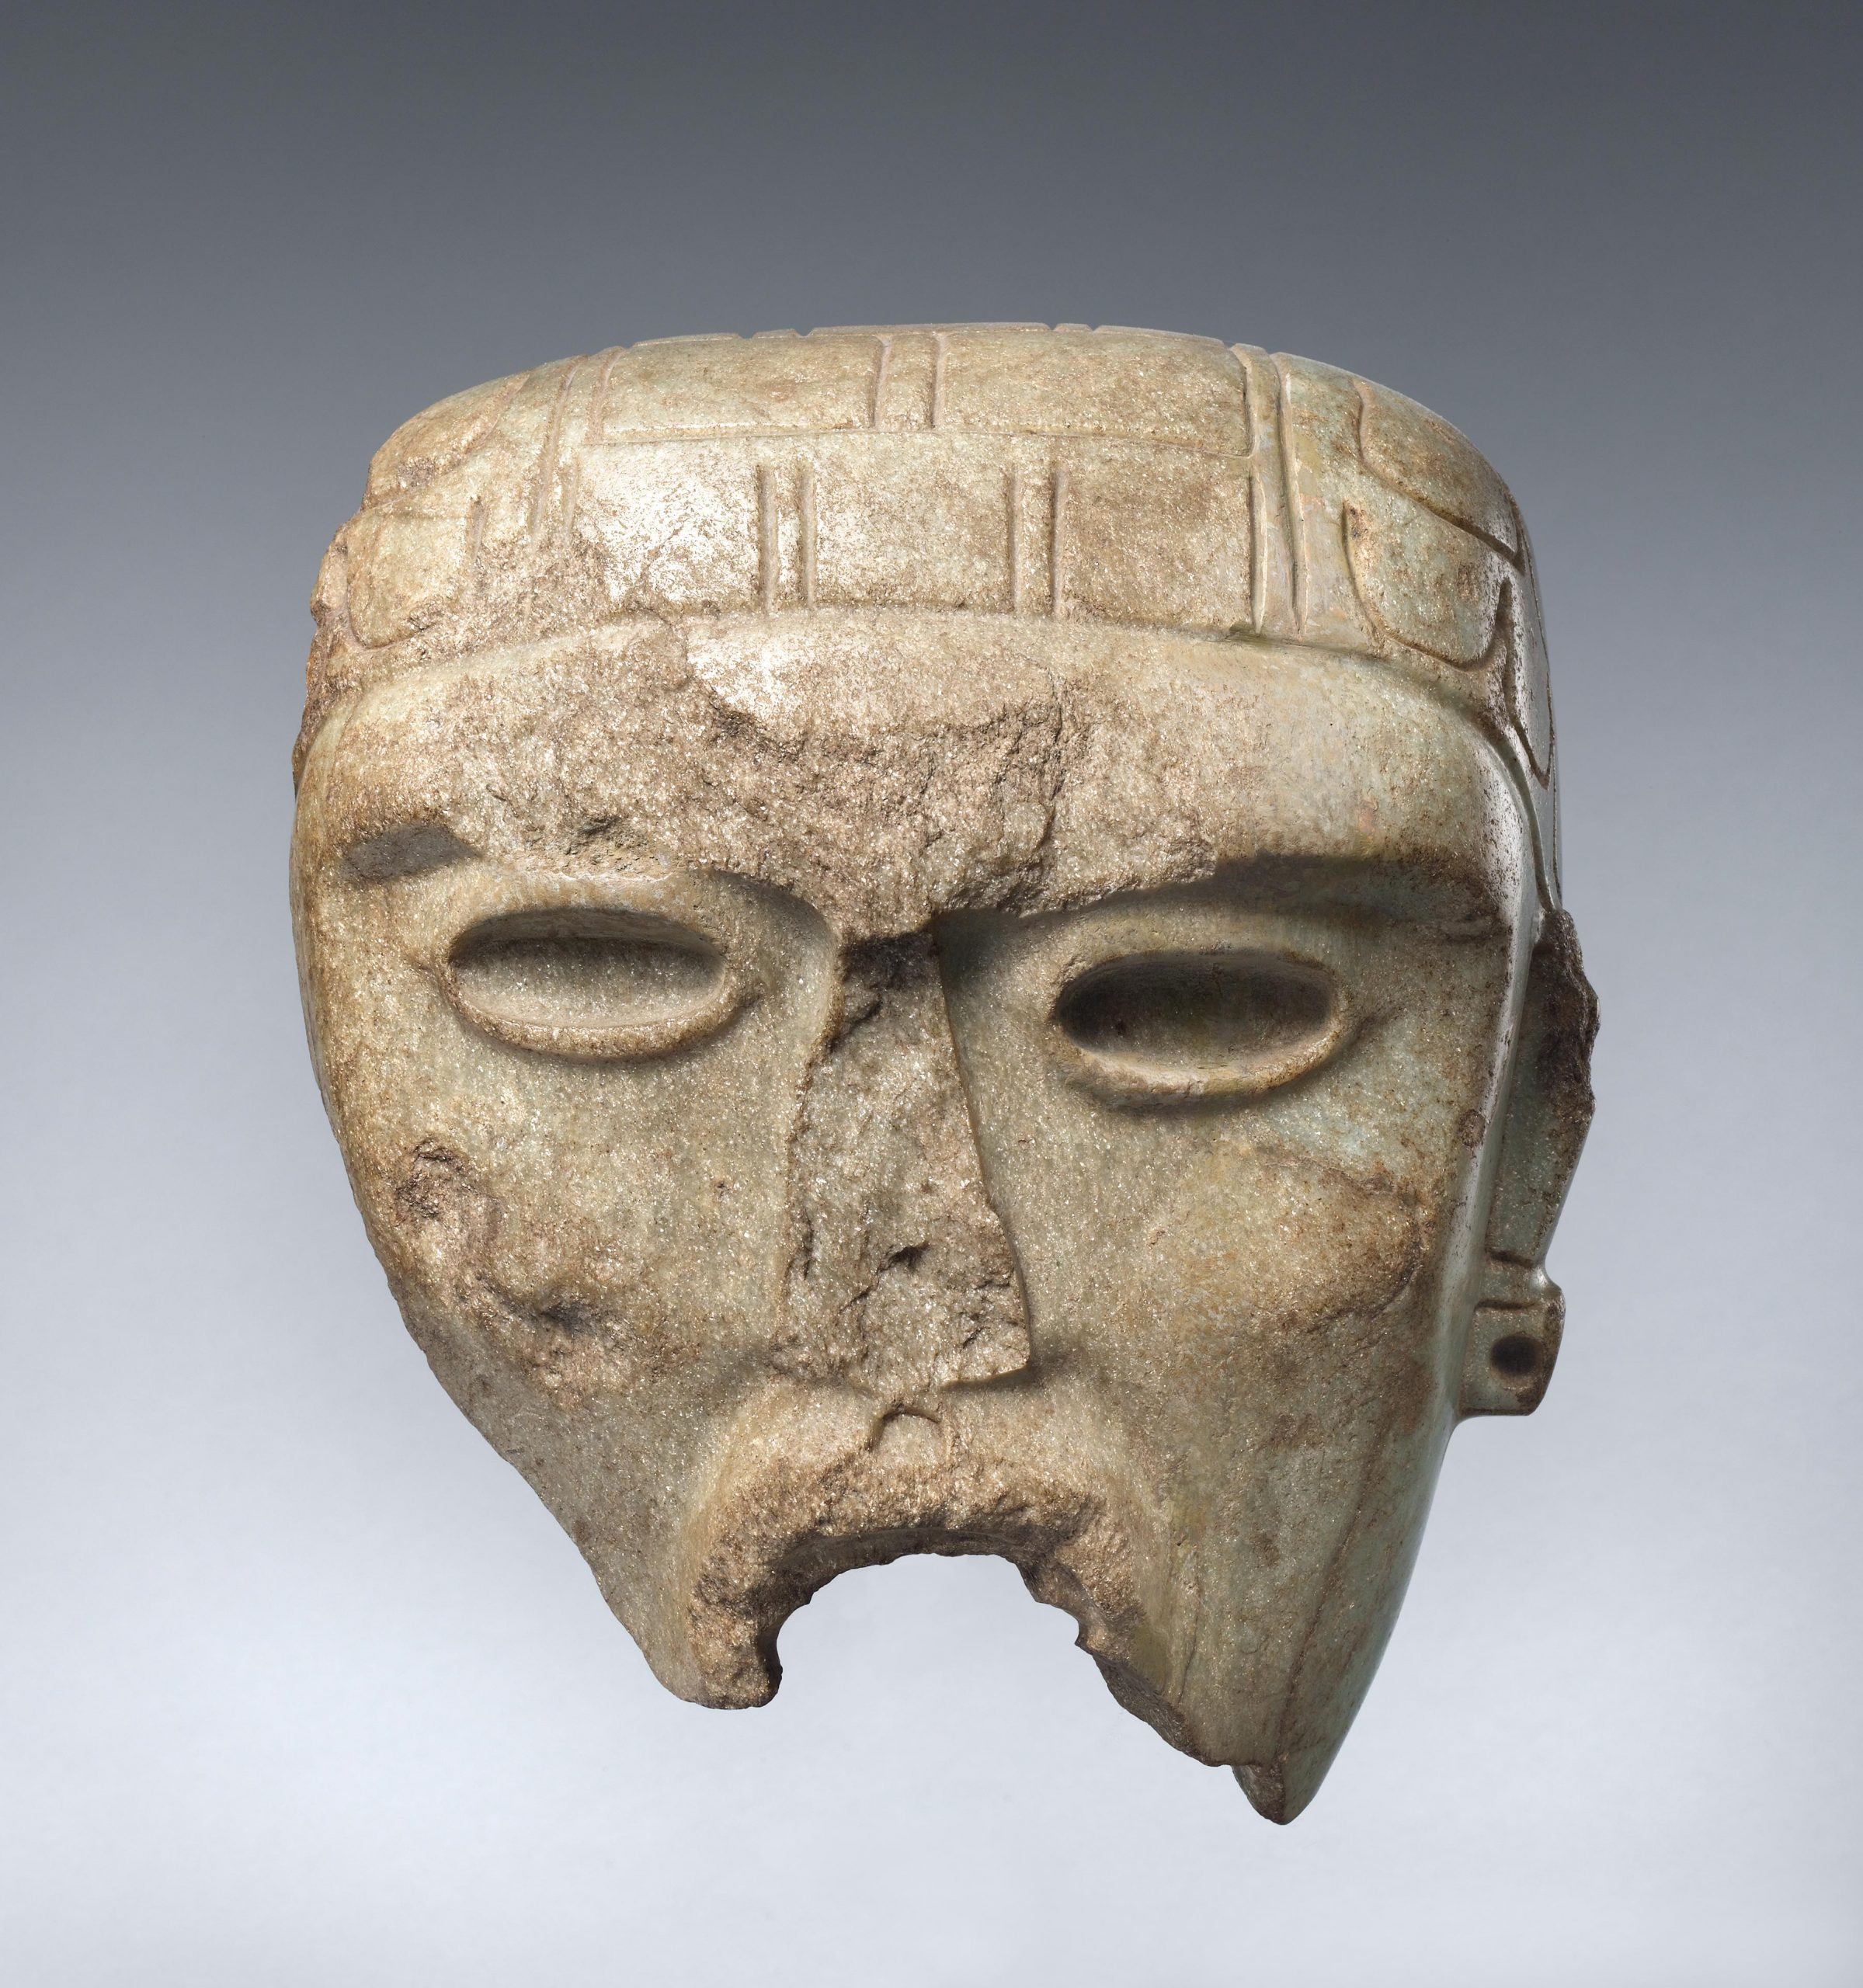 Fragment of a stone mask with hollow eyes and an intricate headdress.